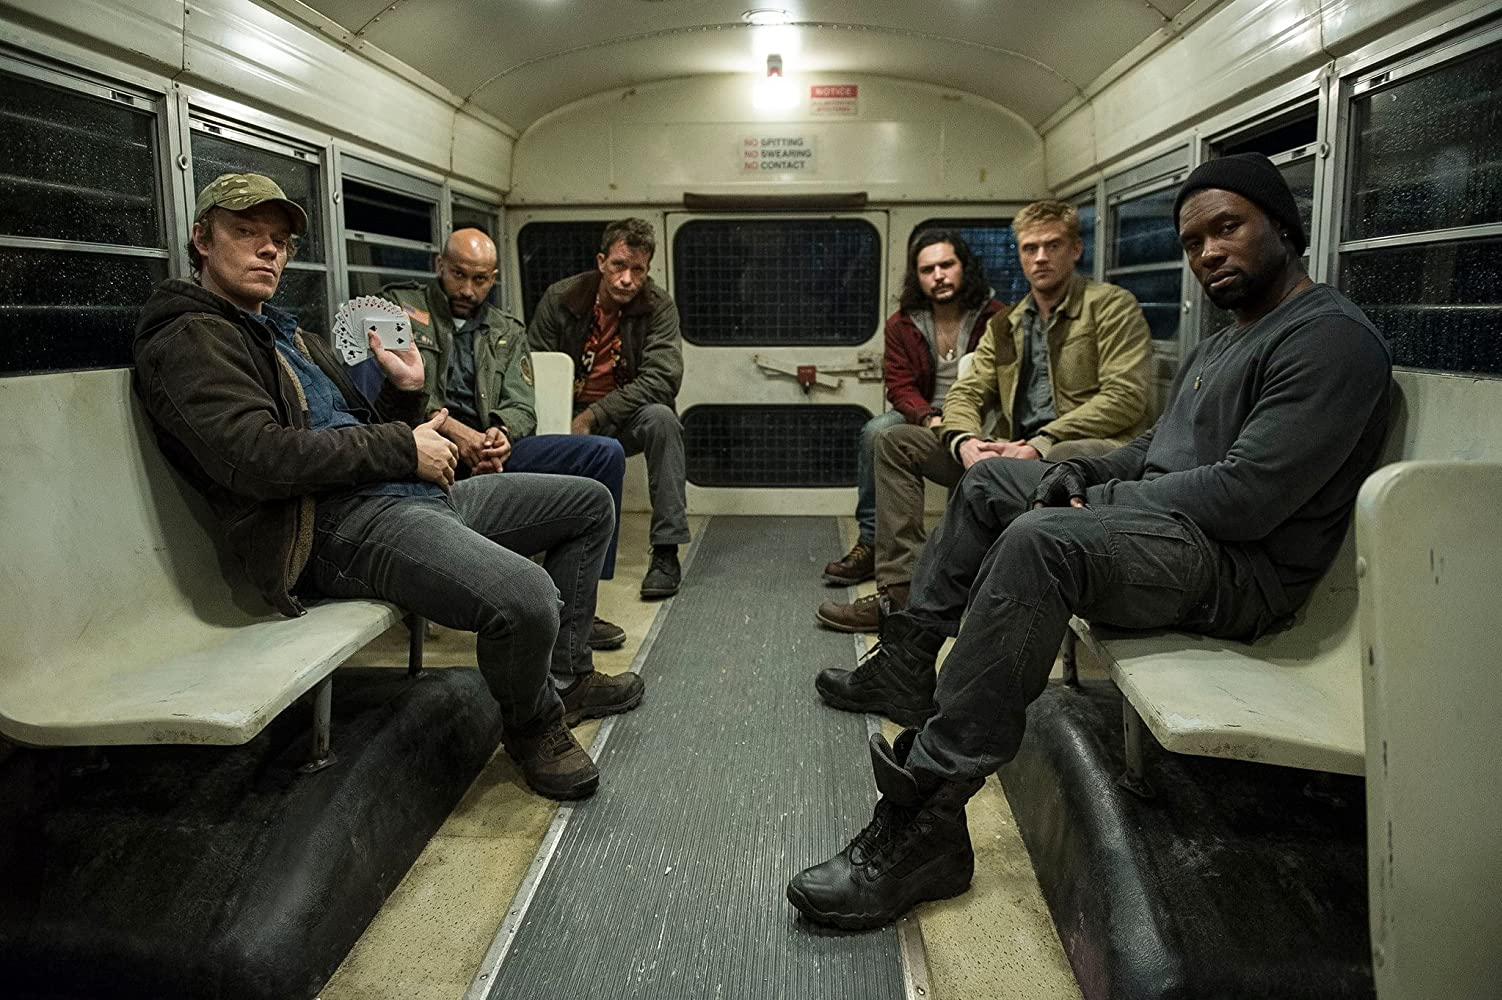 Thomas Jane, Alfie Allen, Keegan-Michael Key, Boyd Holbrook, Augusto Aguilera, and Trevante Rhodes in The Predator (2018)